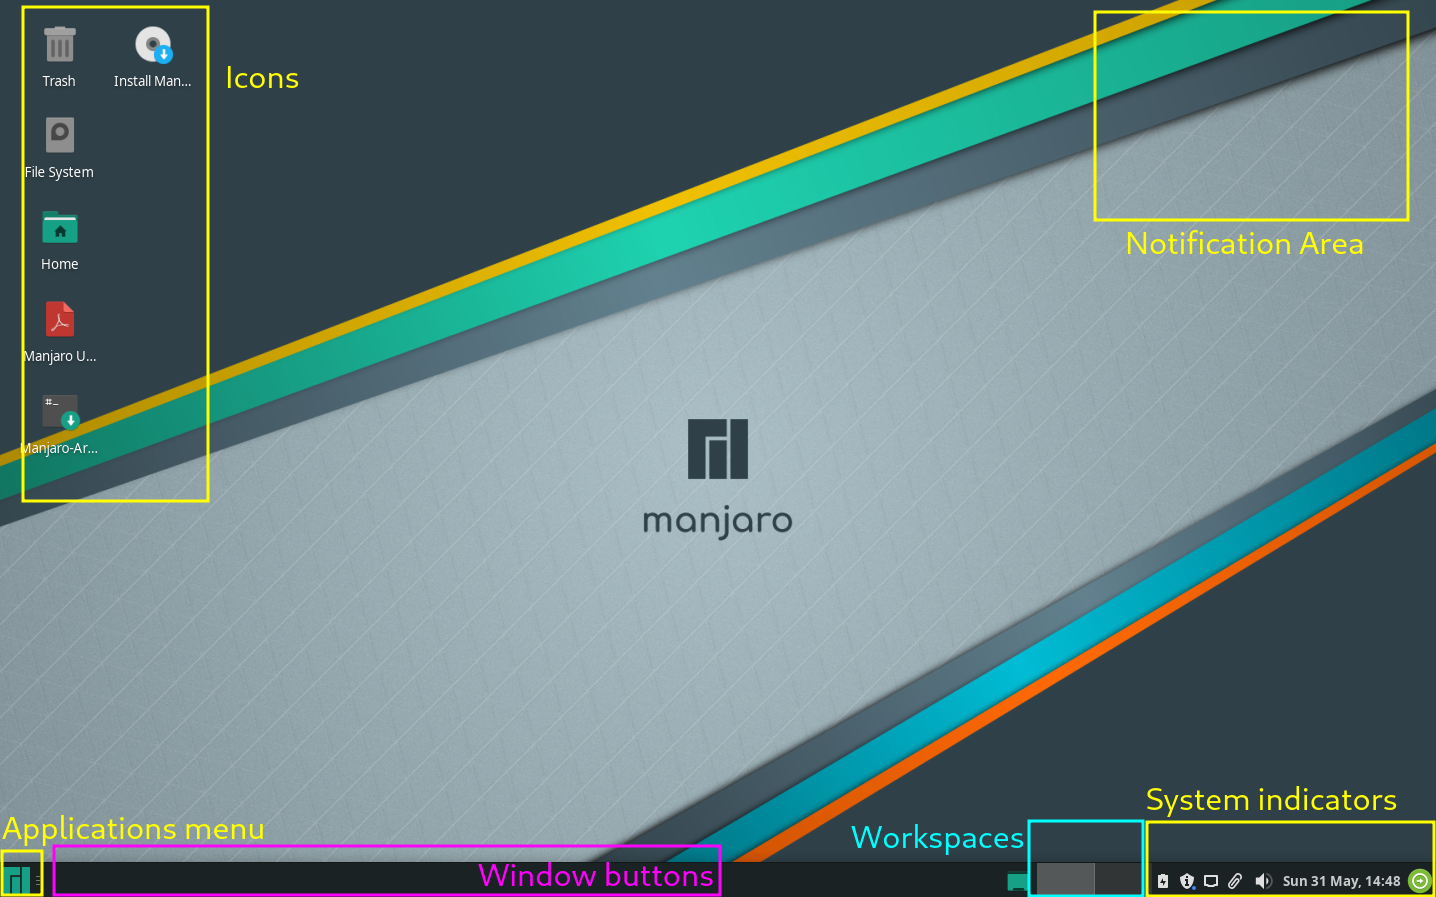 images/welcome-to-manjaro/manjaro-desktop.png